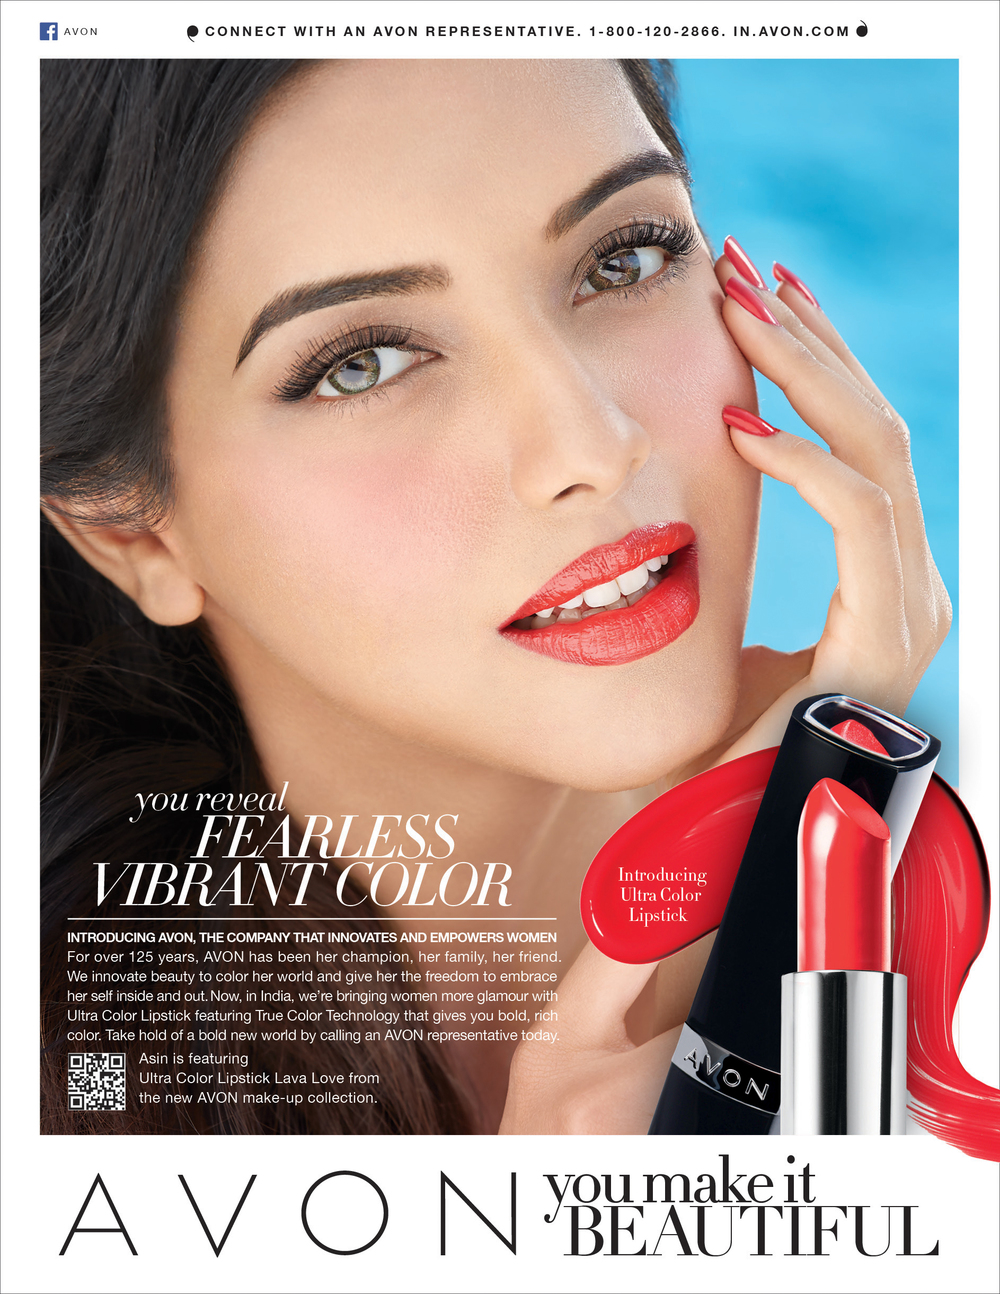 AVON_Ignite1.0_Print_India_0703142.jpg